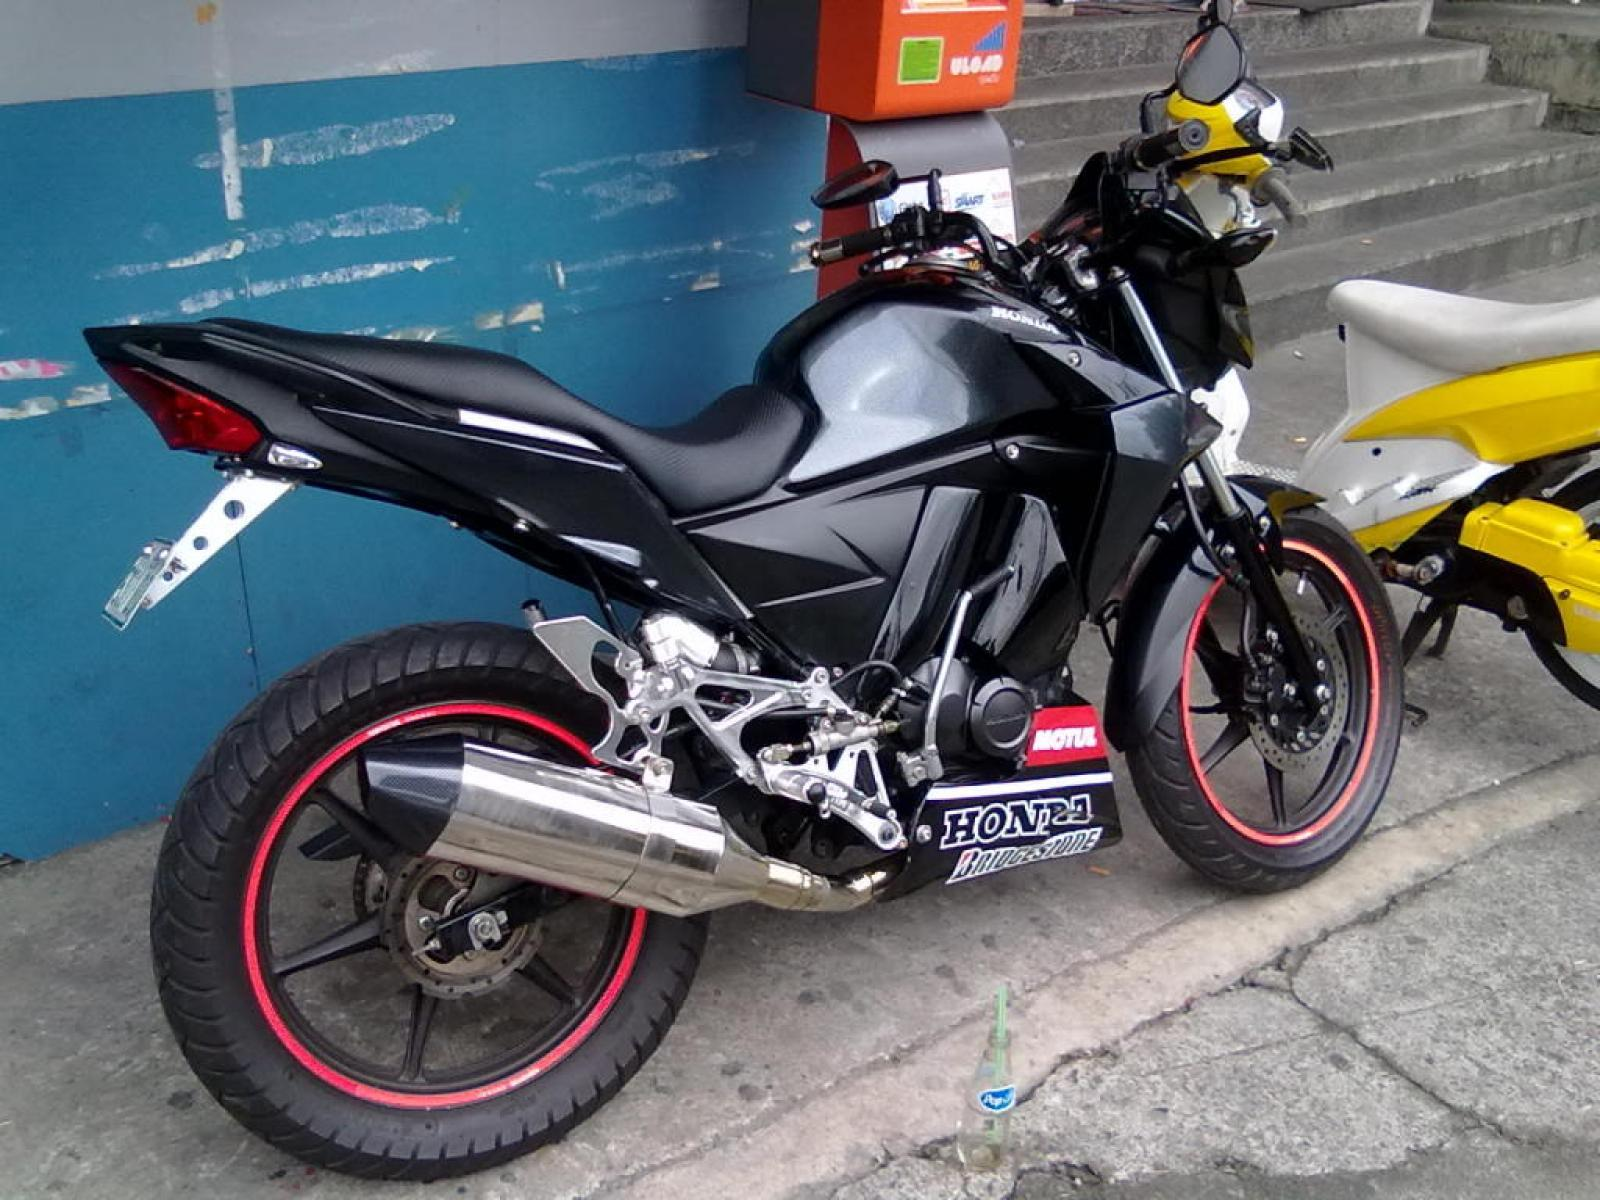 Honda Tmx Supremo Pics And in addition 144 Pocket Bike Yamaha Red Bull further Motard Bikes Philippines together with Yamaha Fazer Fzs600 Streetfighter 14406 moreover Yamaha International Motorshow Revs Your Heart At Sm Mall Of Asia. on yamaha motorcycles for sales